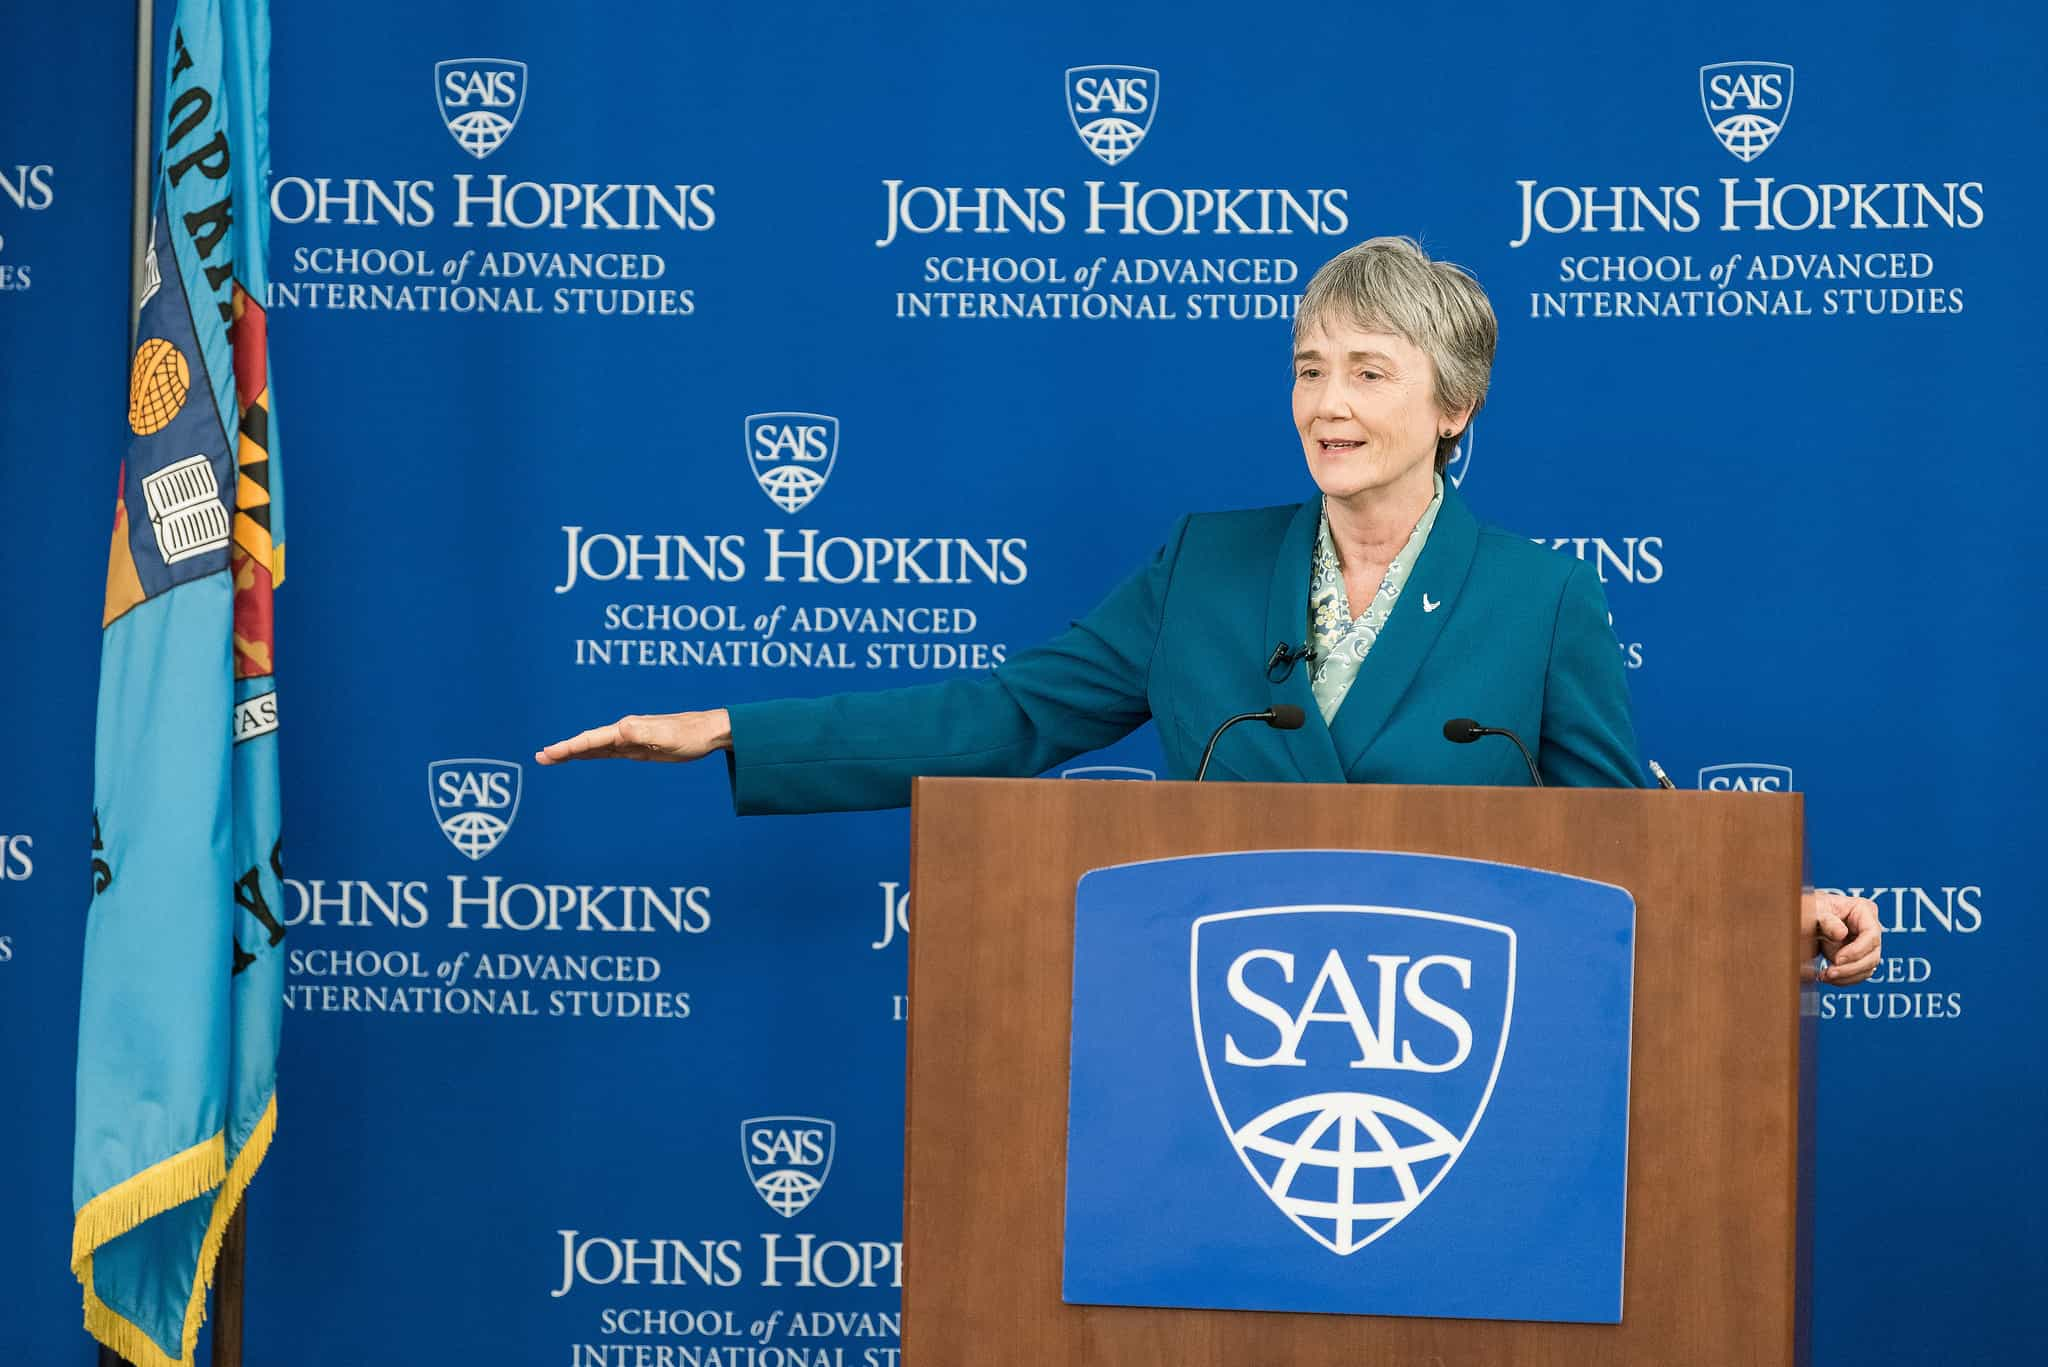 Heather Wilson, Secretary of the US Air Force, speaking at Johns Hopkins SAIS